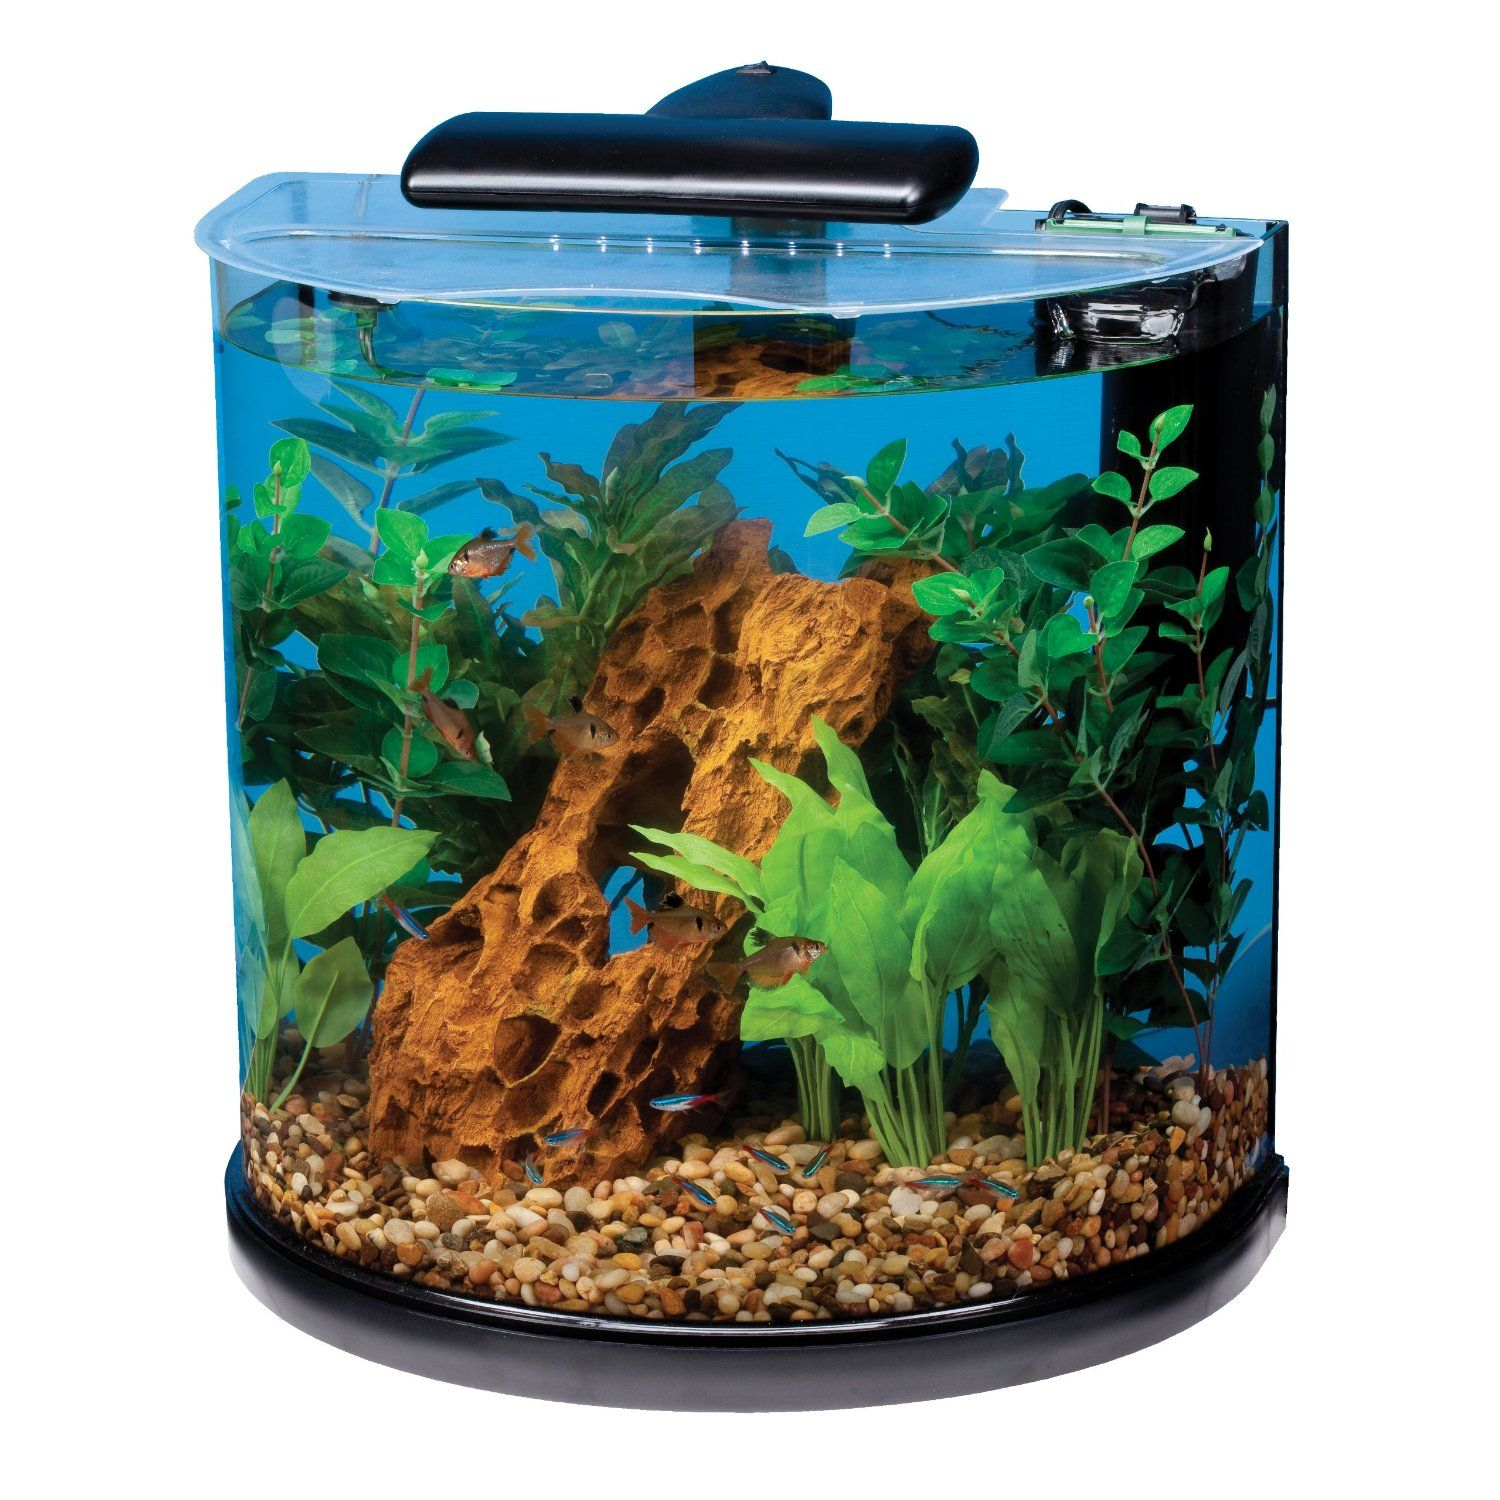 Cool Aquariums For Sale Amazoncom Tetra 29234 Half Moon Aquarium Kit 10 Gallon Pet